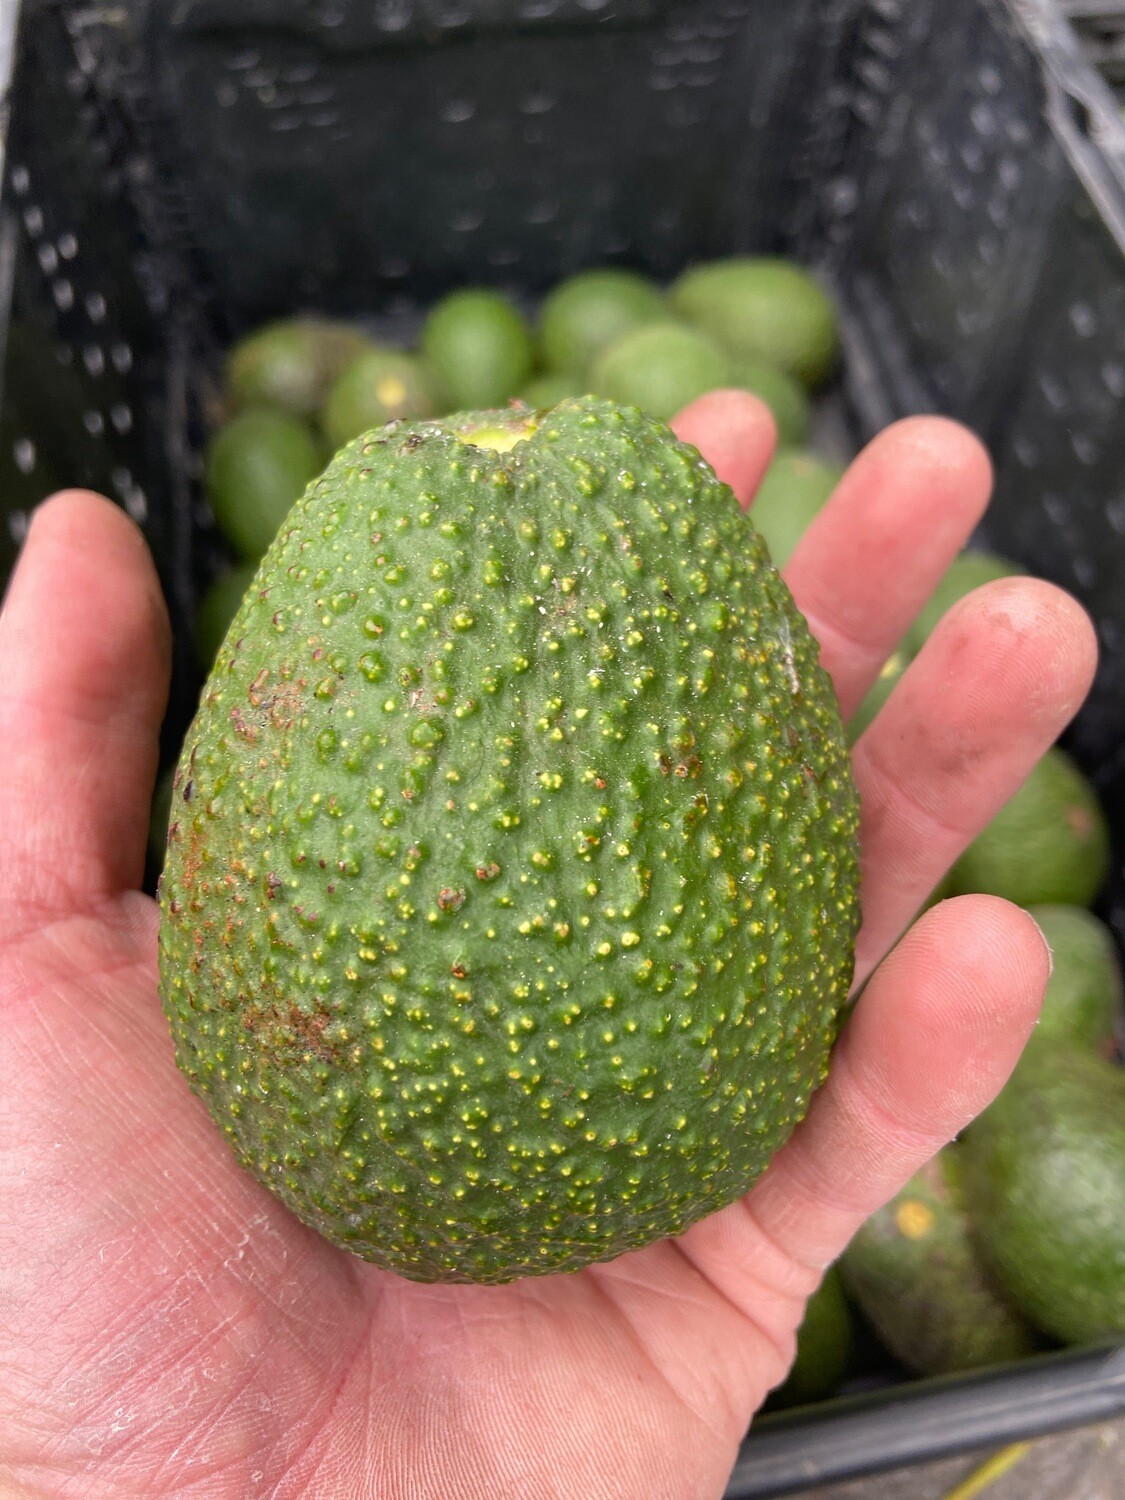 Early Harvest Small Hass Avocado - Monte Verde (1lb)